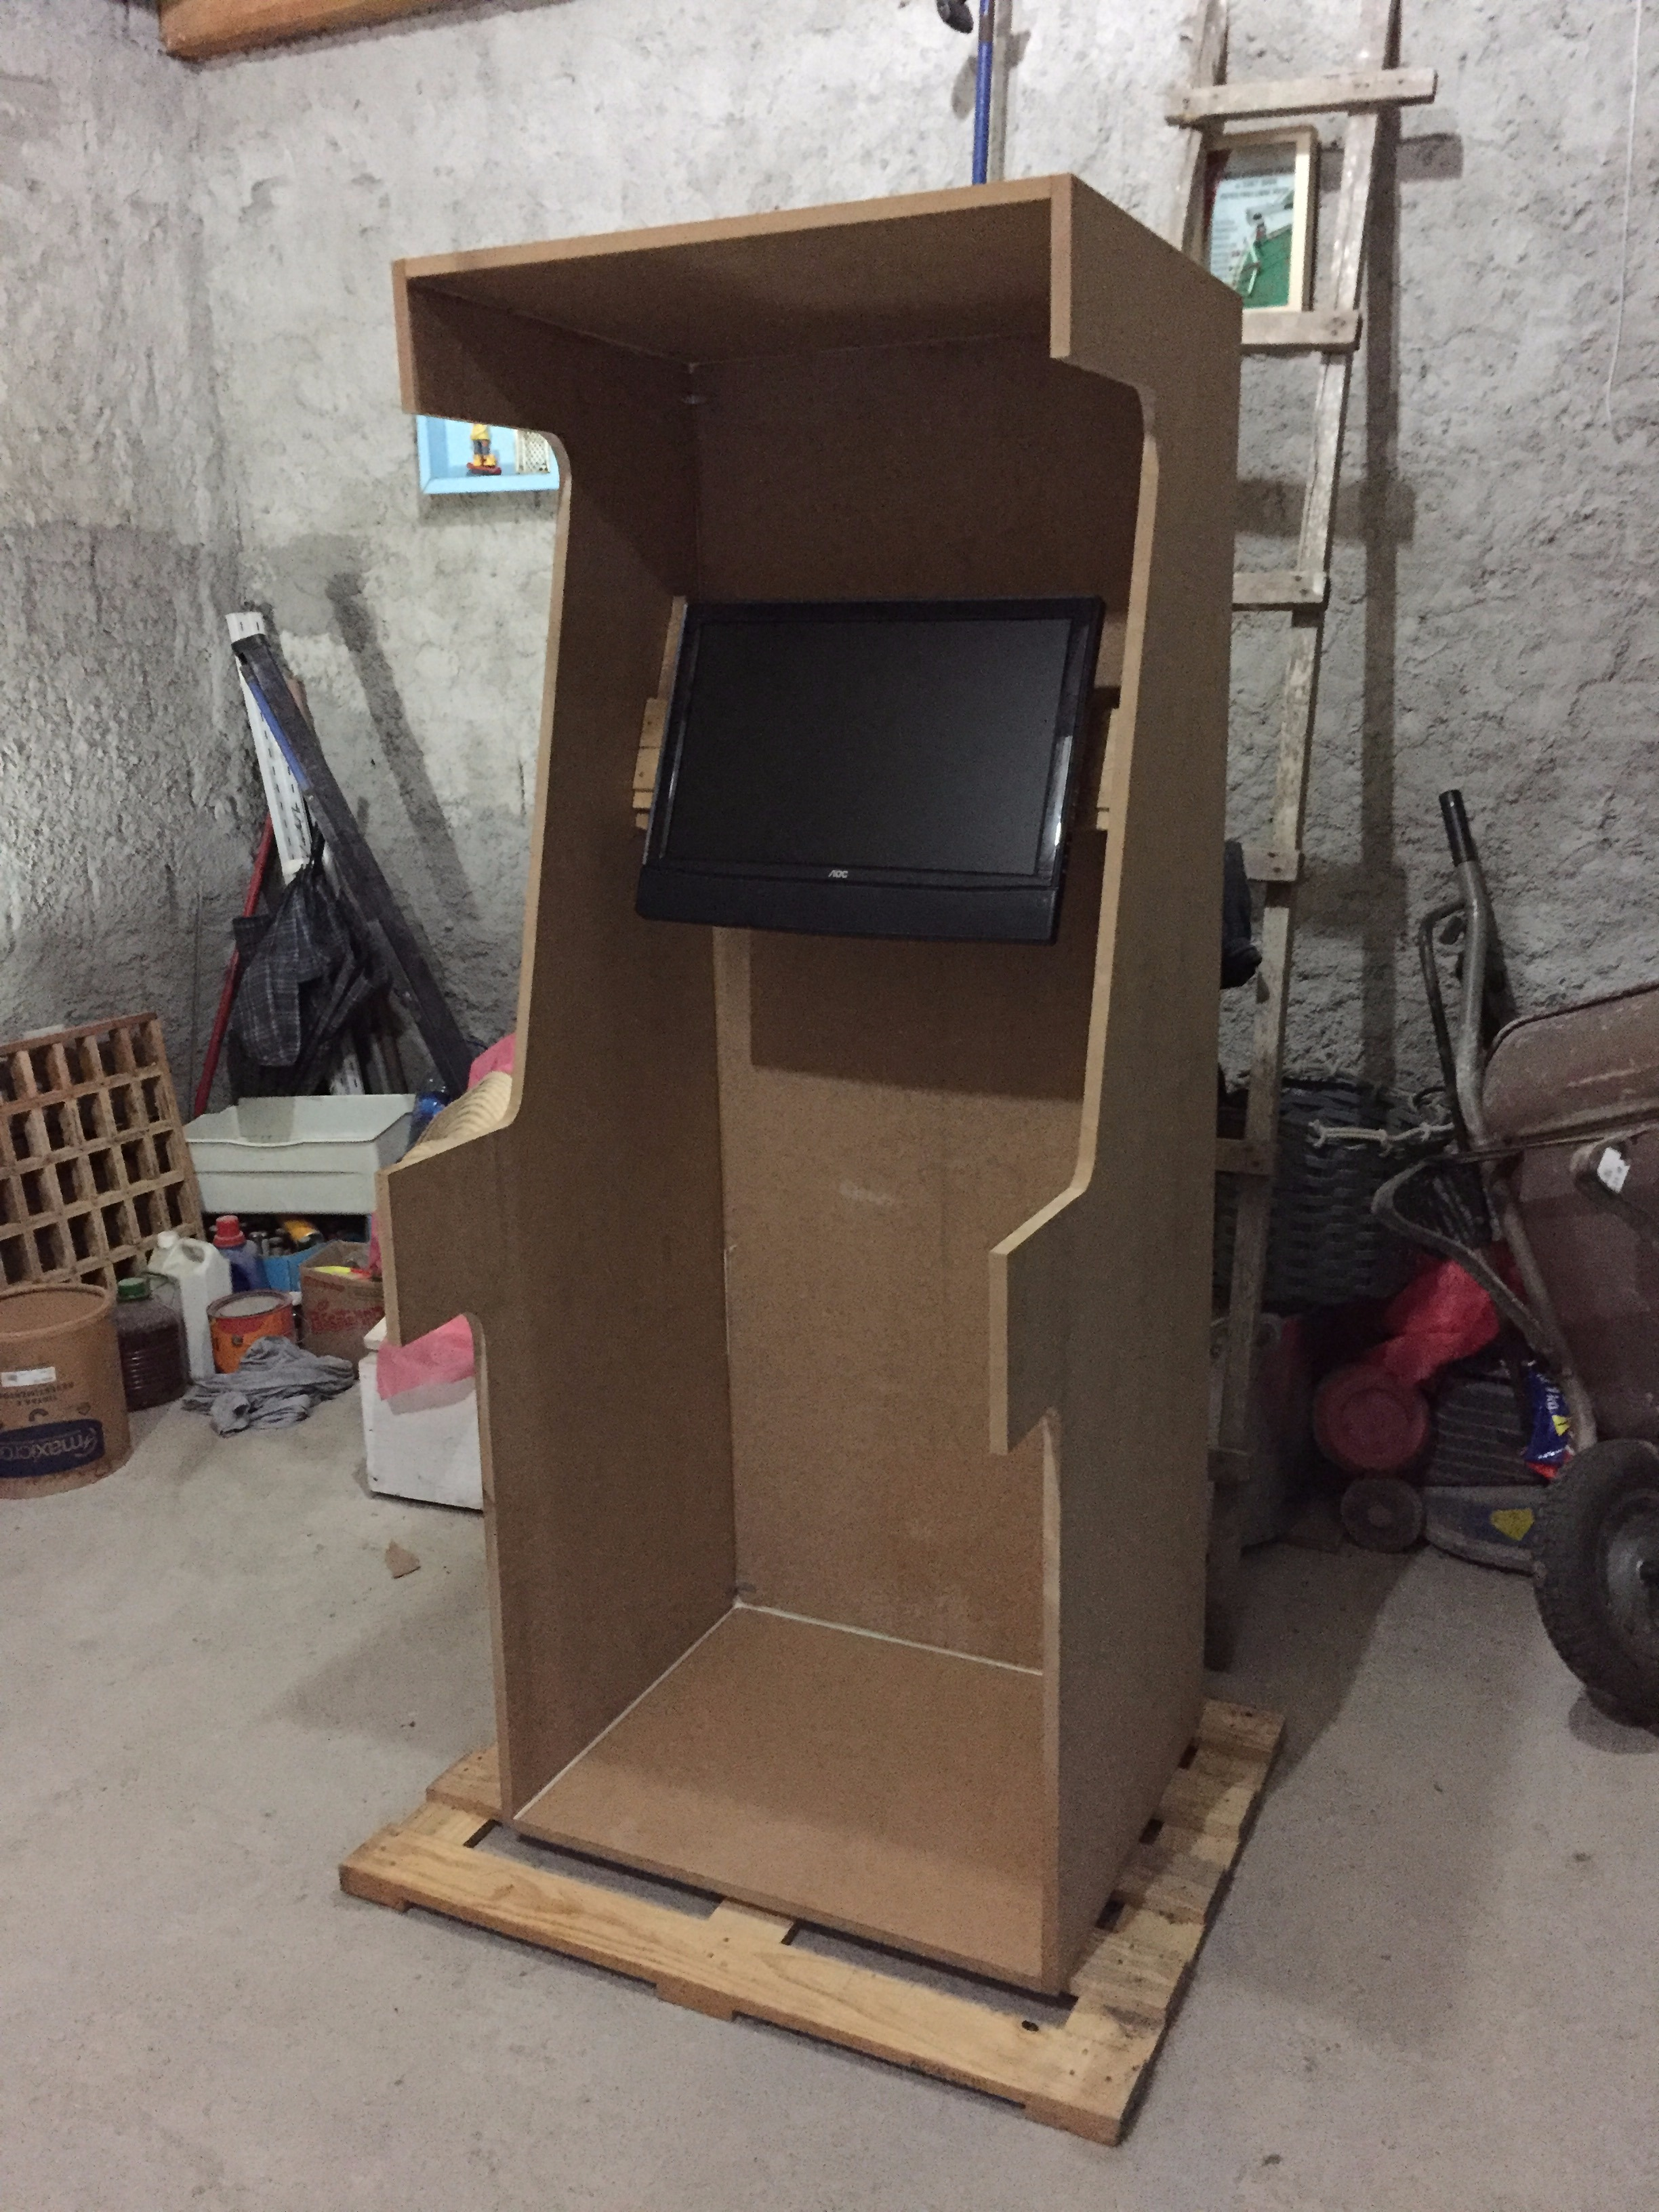 Picture of Arcade With a Pc Computer